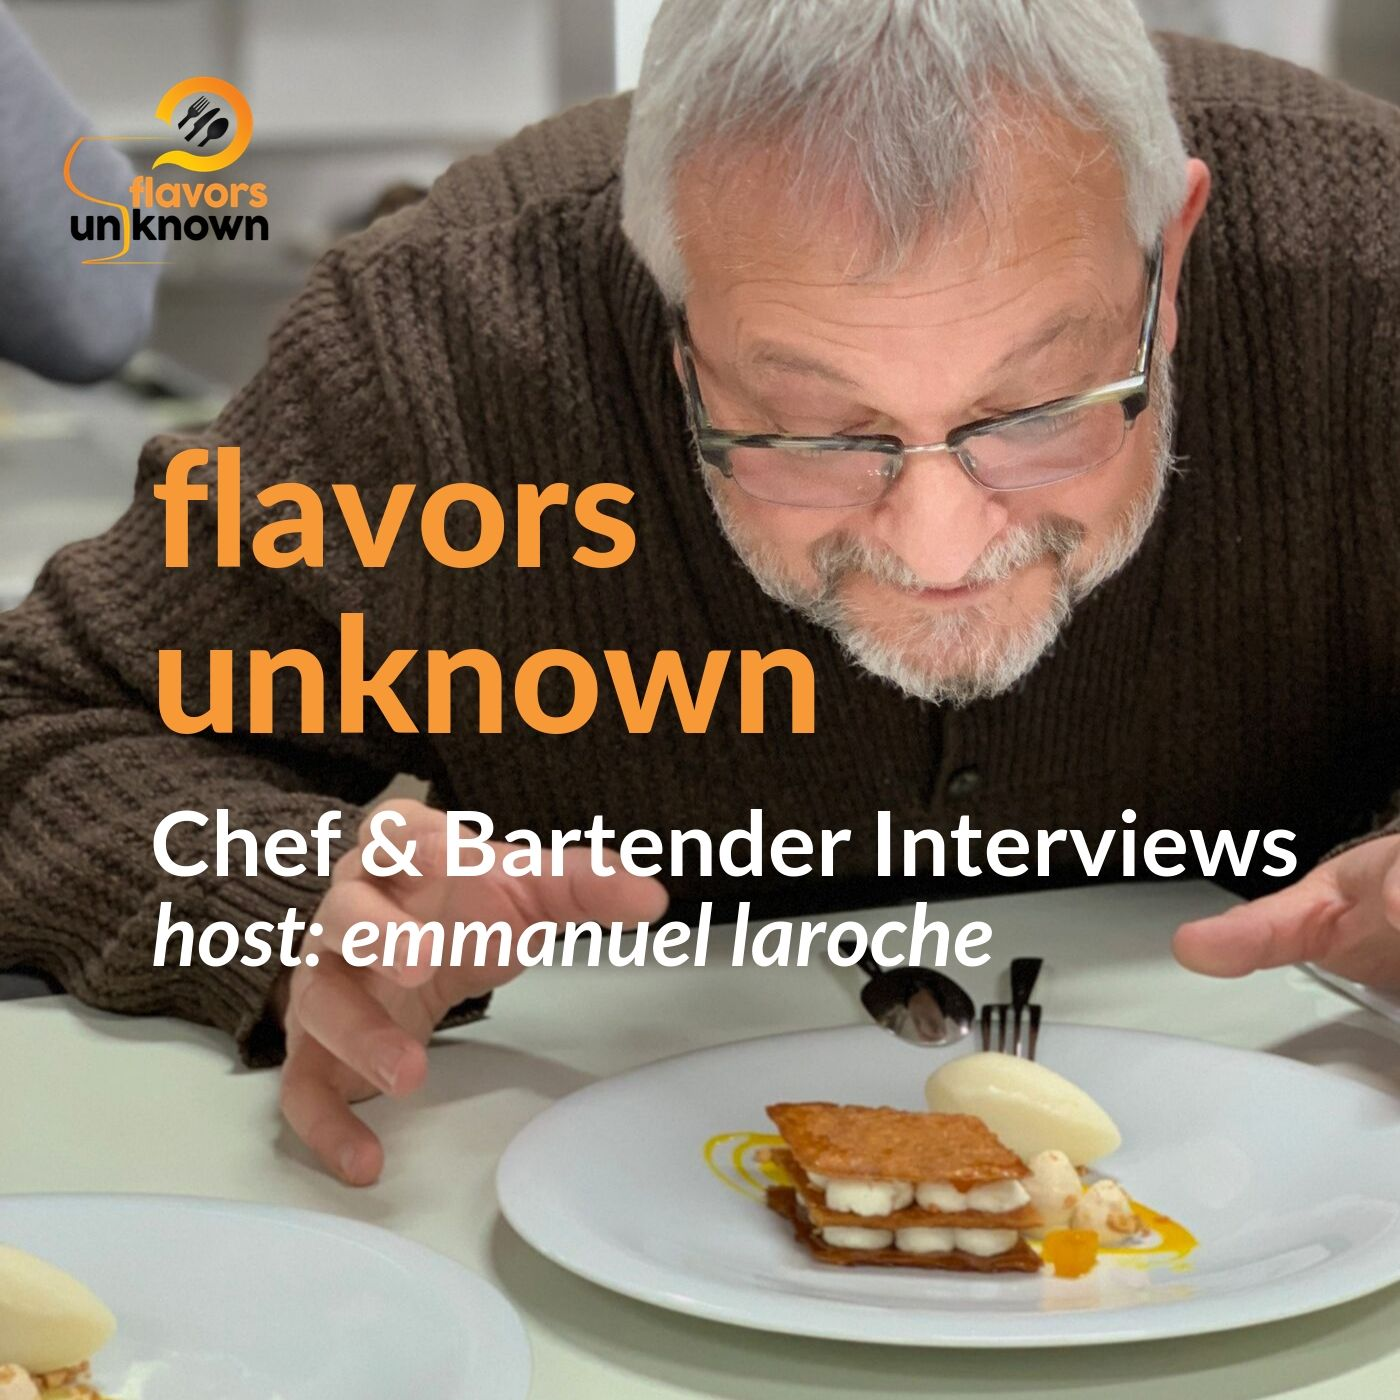 The Personal Chef Chris Spear On What The Job Entails